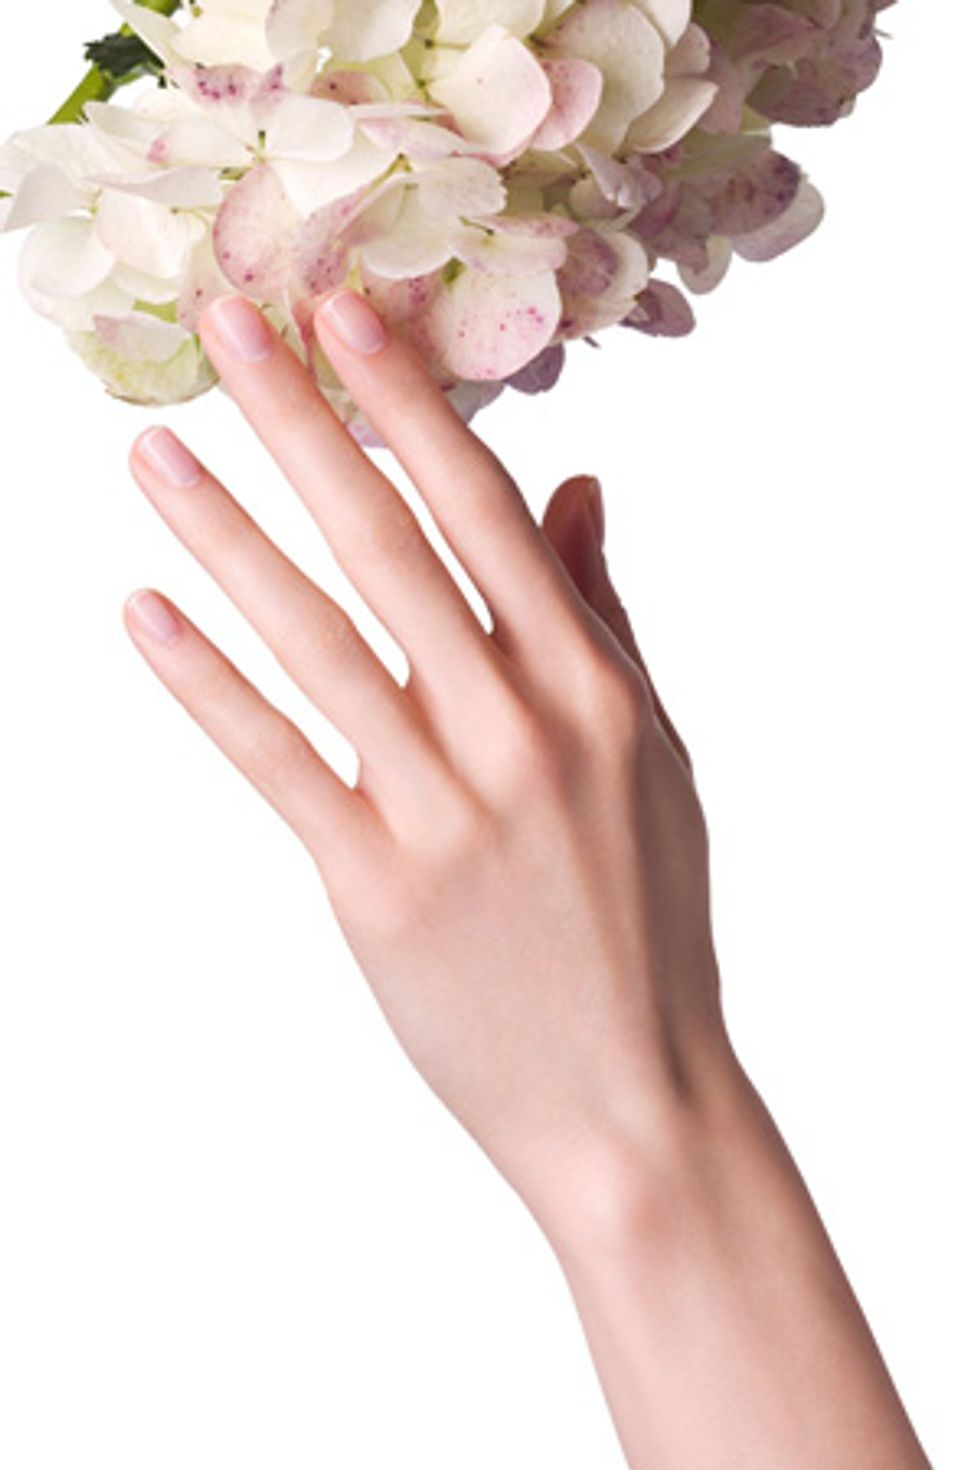 UV Gelife: A Manicure That Won't Quit